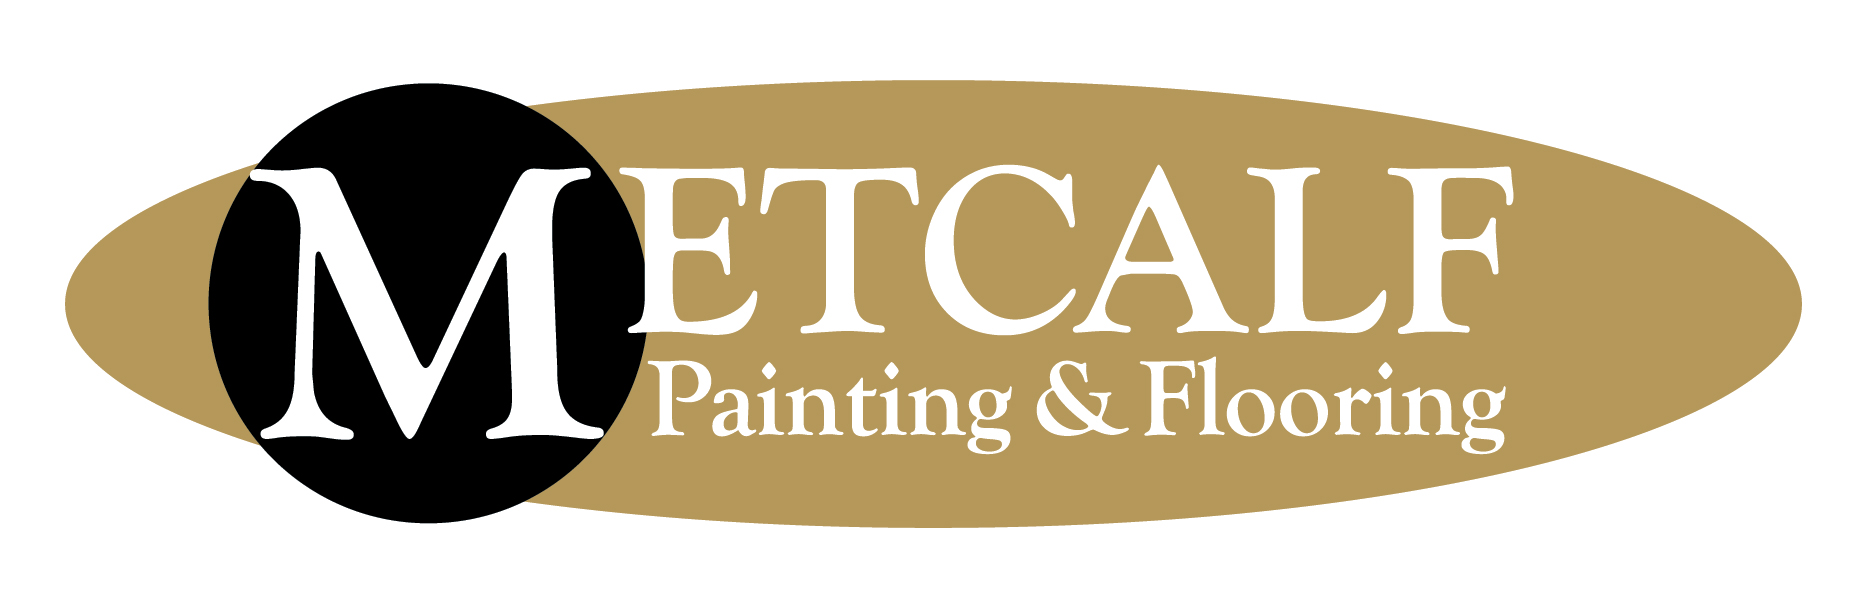 Metcalf Painting & Flooring%0D%0A  Logo.jpg